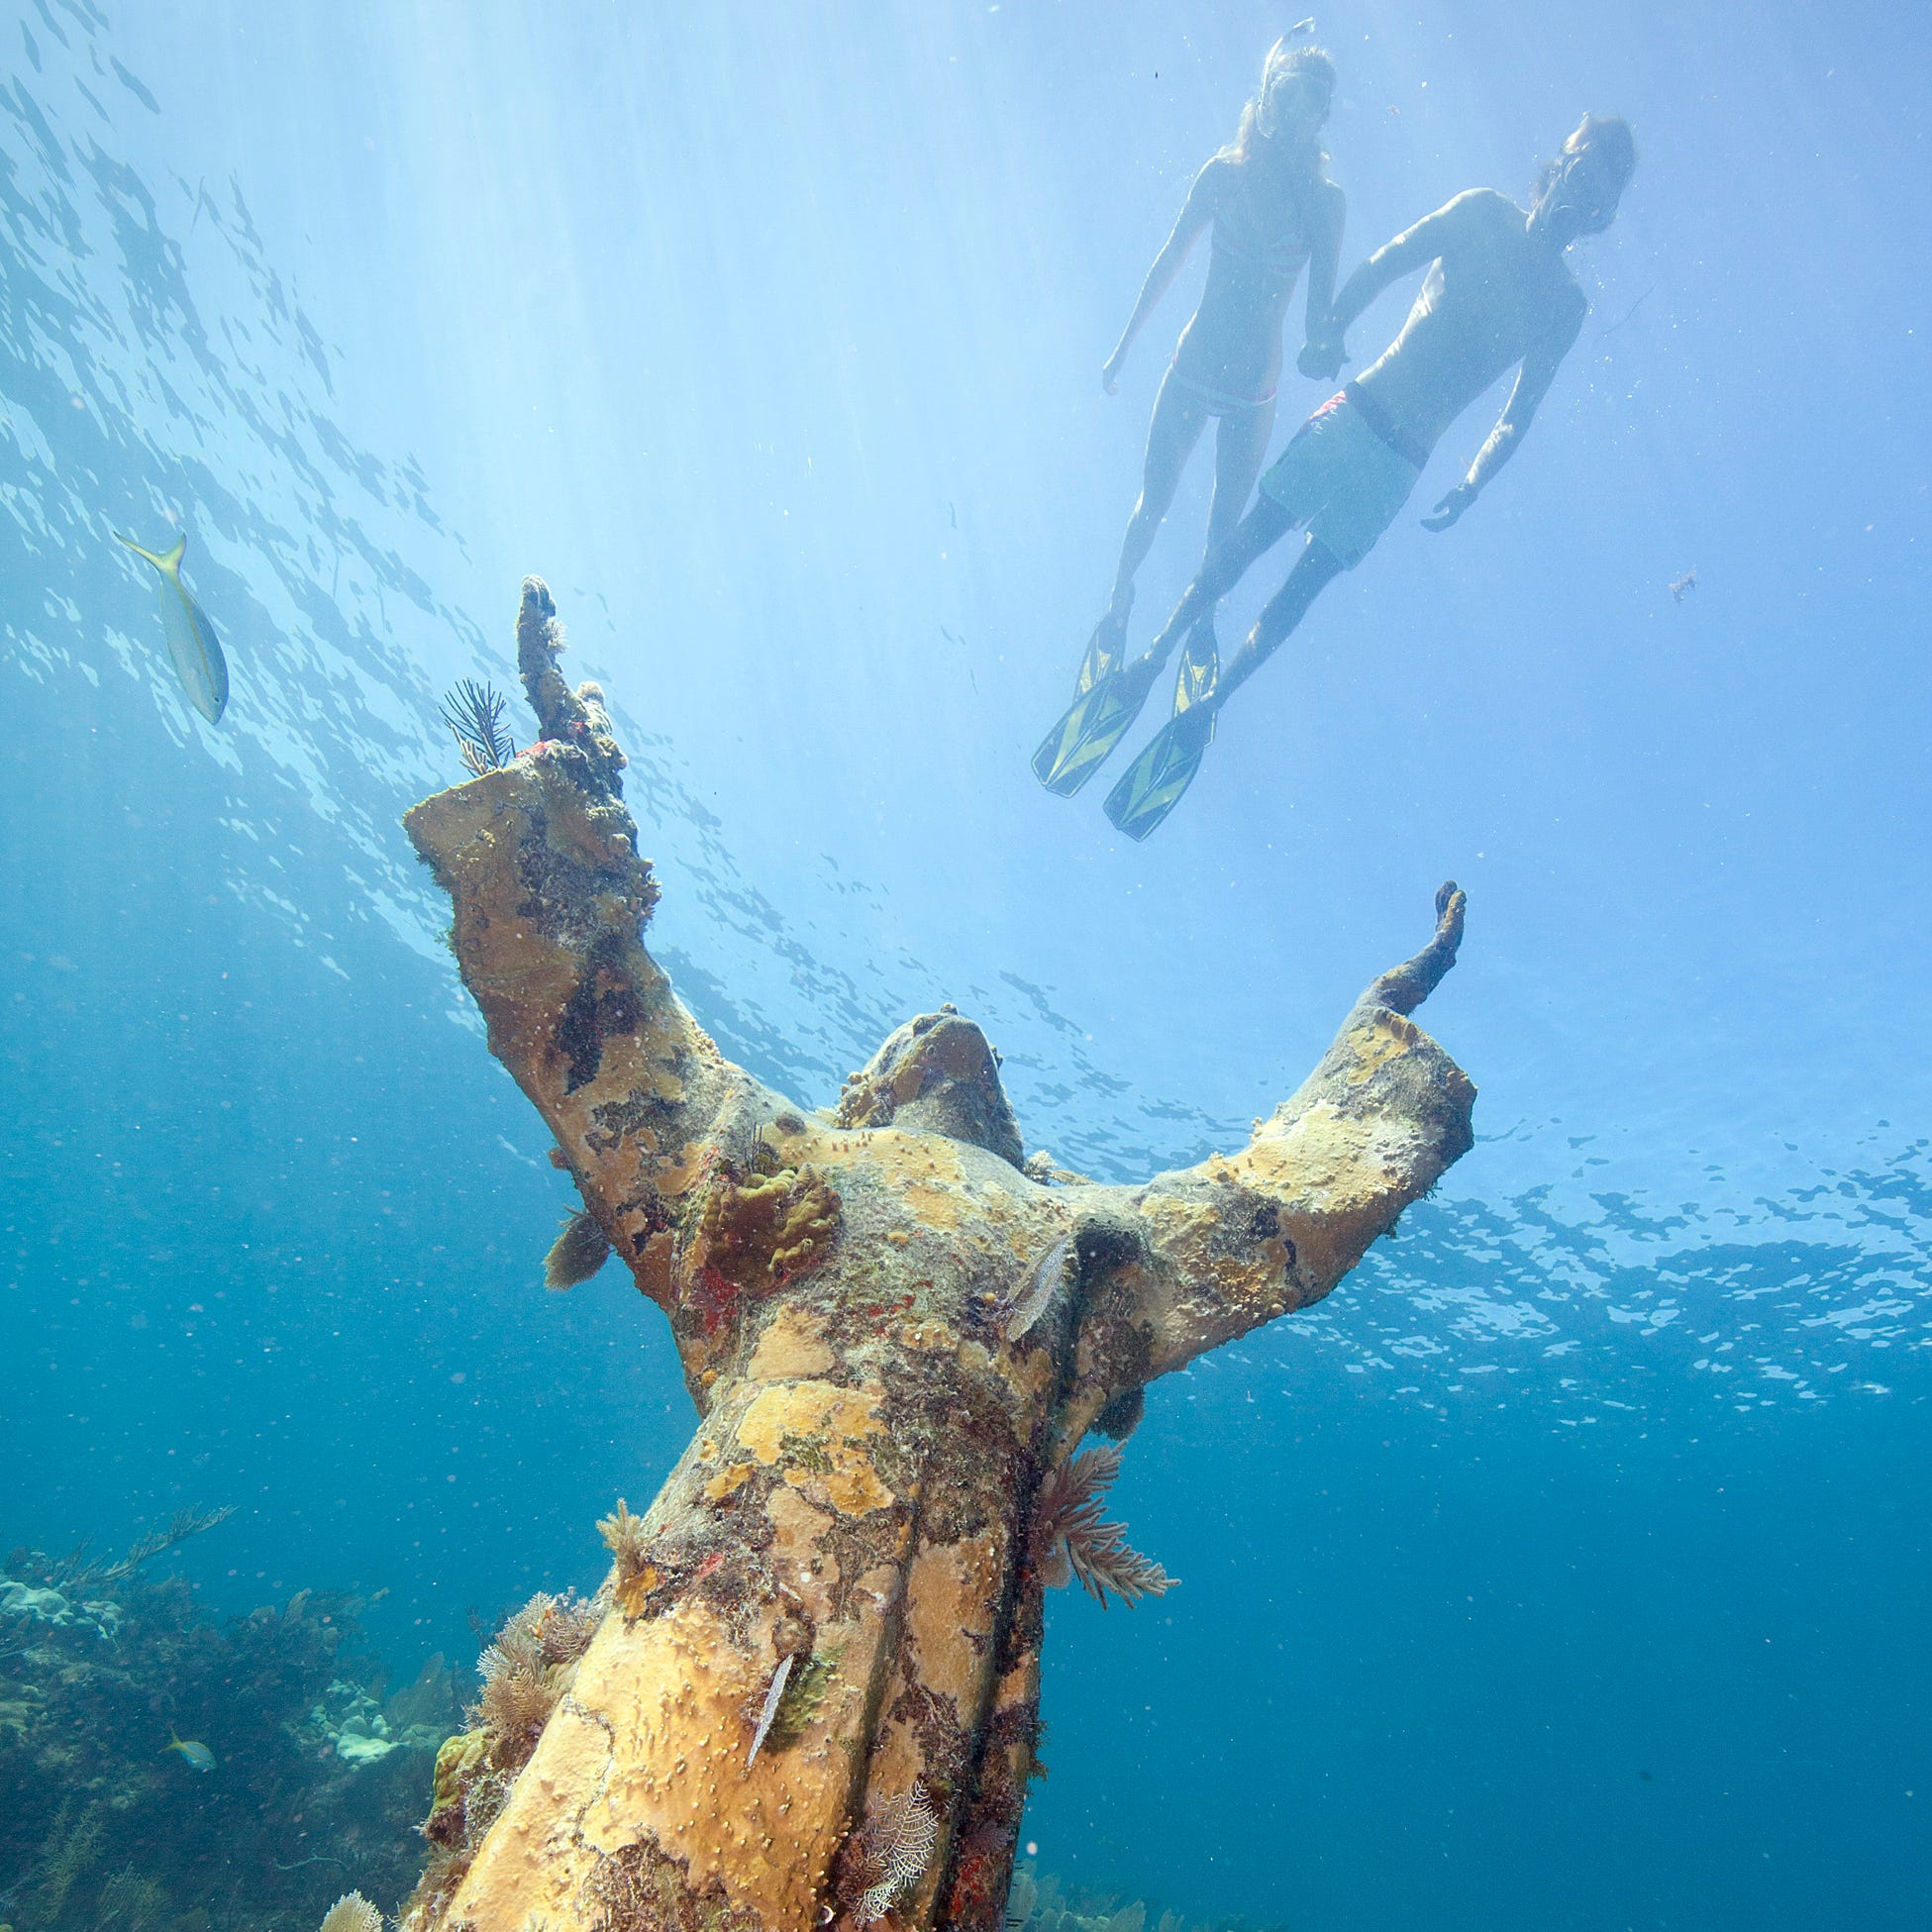 Situated about 25 feet under the sea in John Pennekamp Coral Reef State Park in Key Largo, Florida, Christ of the Deep – sometimes called Christ of the Abyss – is a bronze statue by Italian sculptor Guido Galletti.